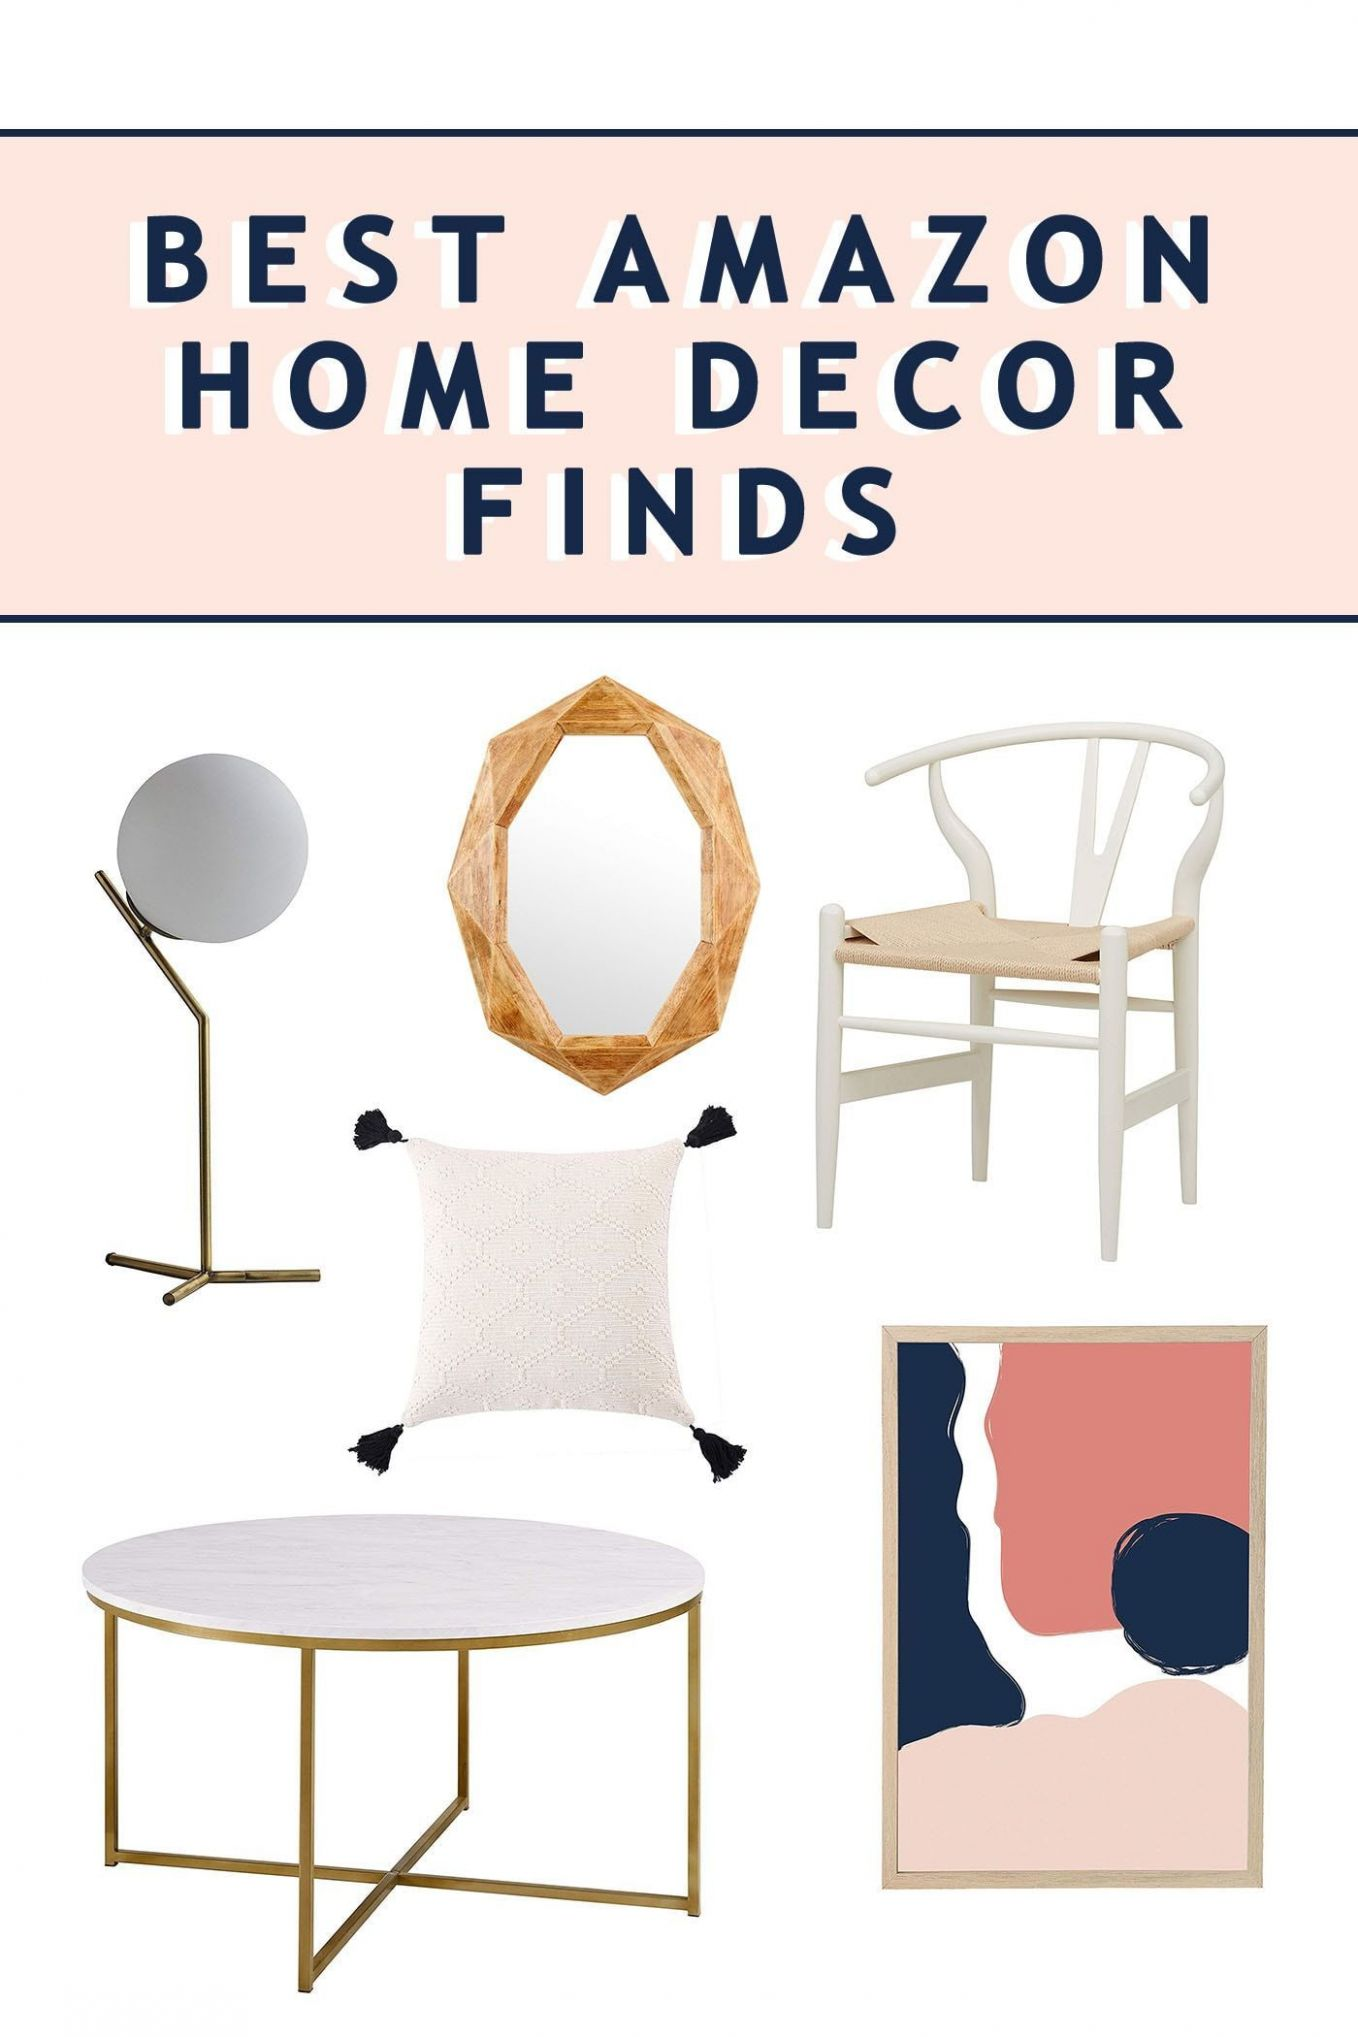 Amazon Home Decor: Our Favorite Amazon Furniture Finds - in 9 ..